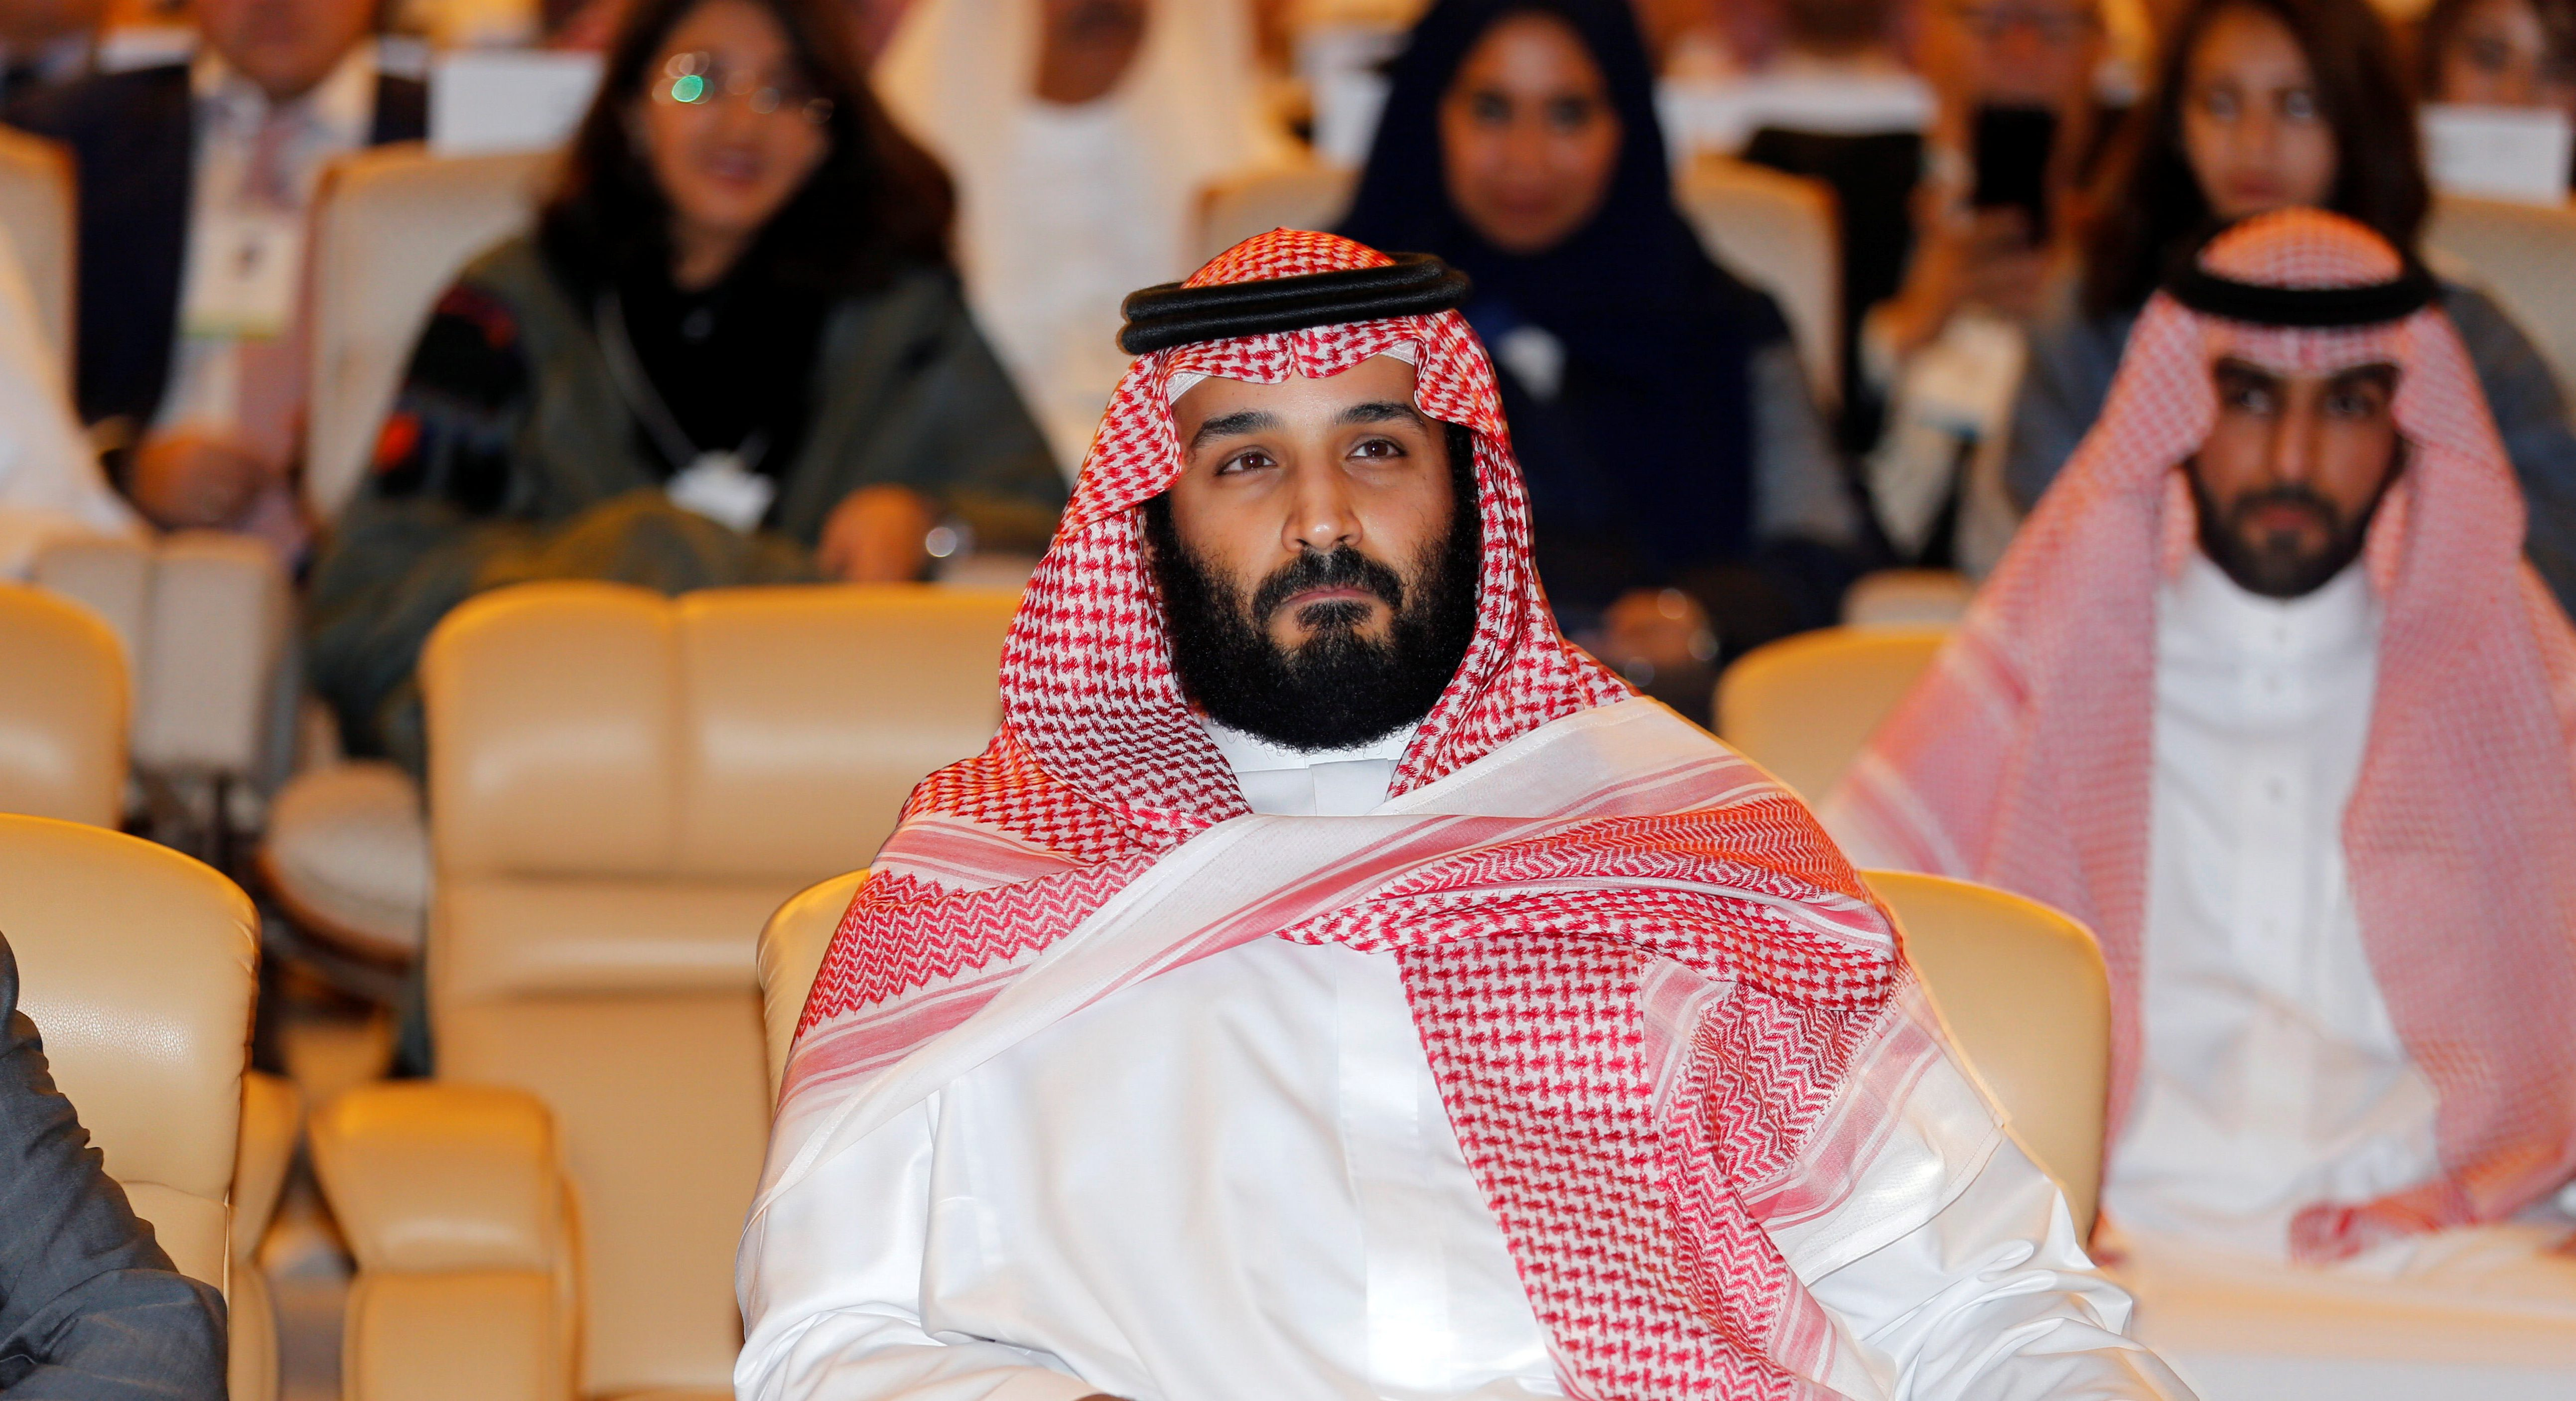 Saudi Crown Prince Mohammed bin Salman, attends the Future Investment Initiative conference in Riyadh, Saudi Arabia October 24, 2017. REUTERS/Hamad I Mohammed - RC14B99CF4A0